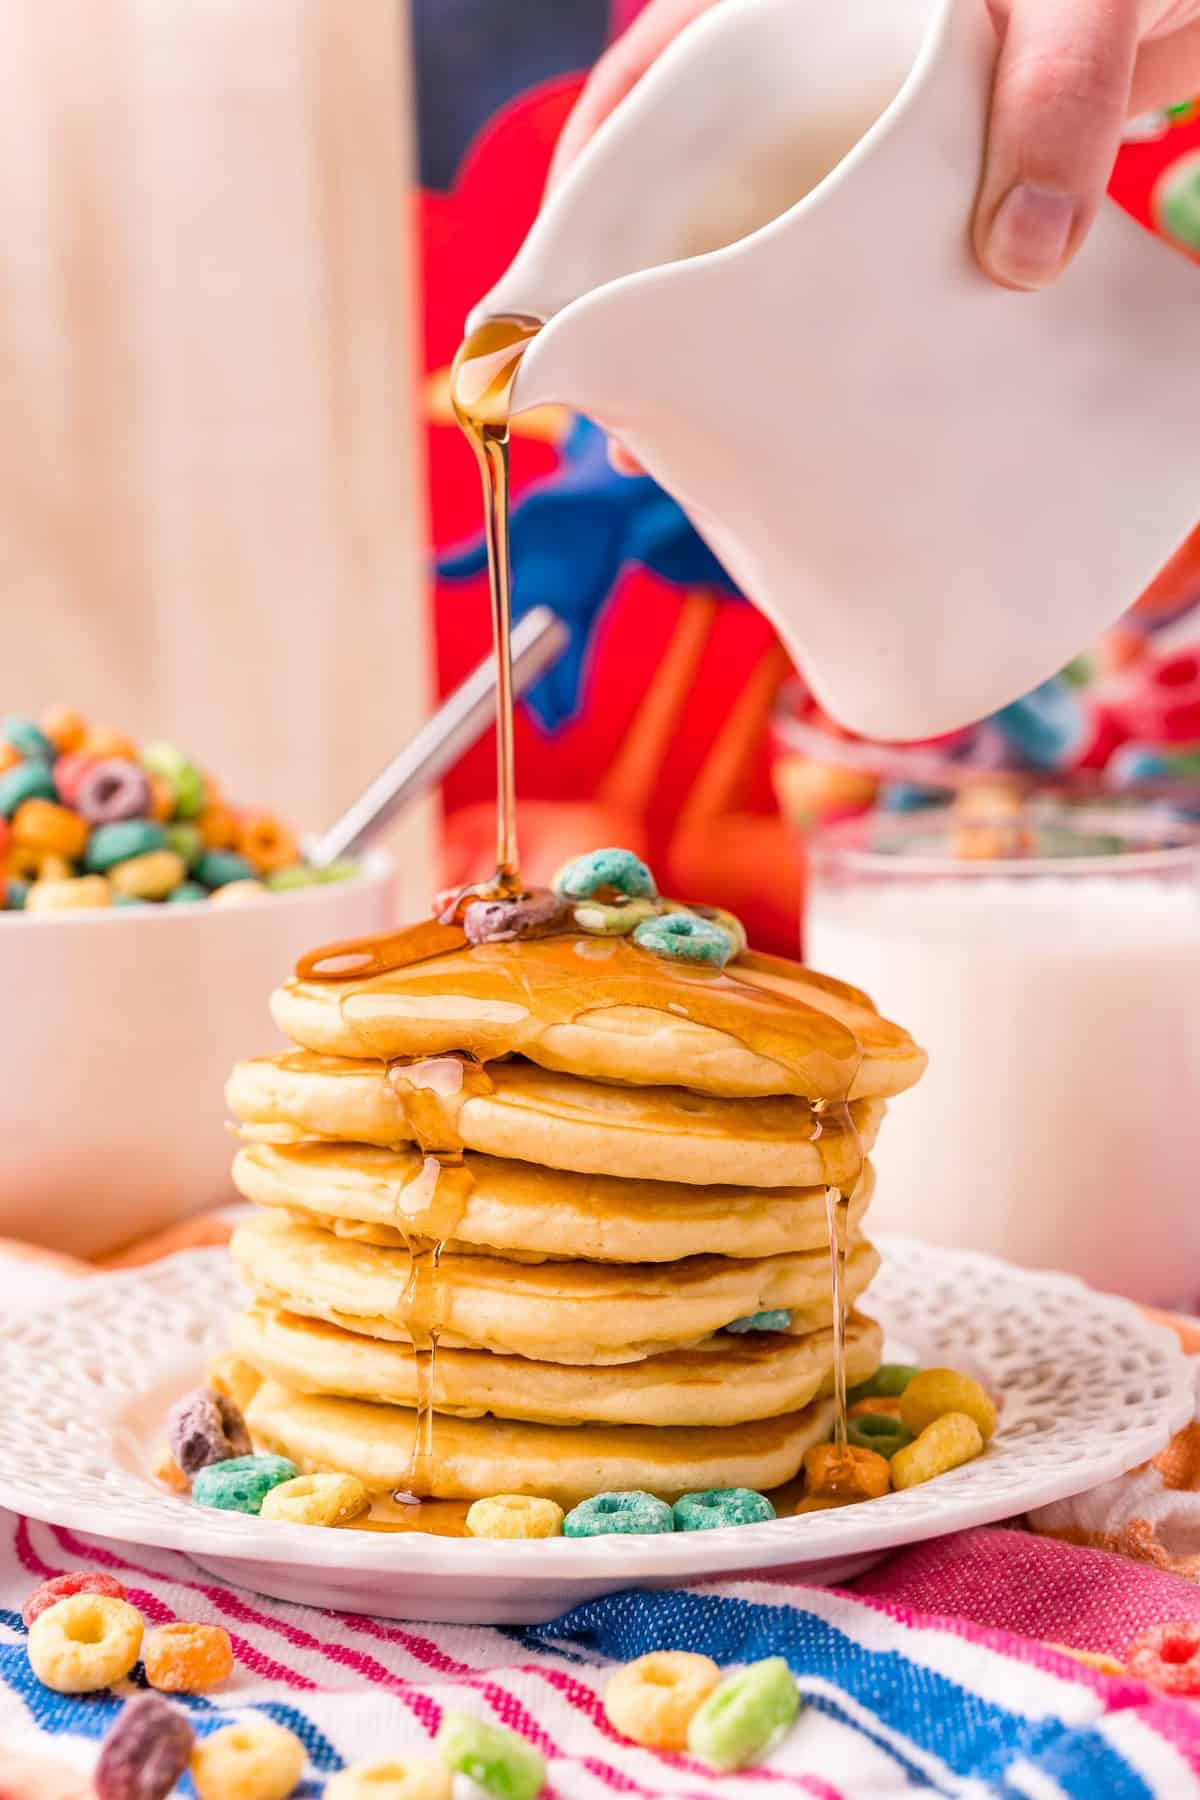 Syrup being poured on a tall stack of froot loop pancakes.